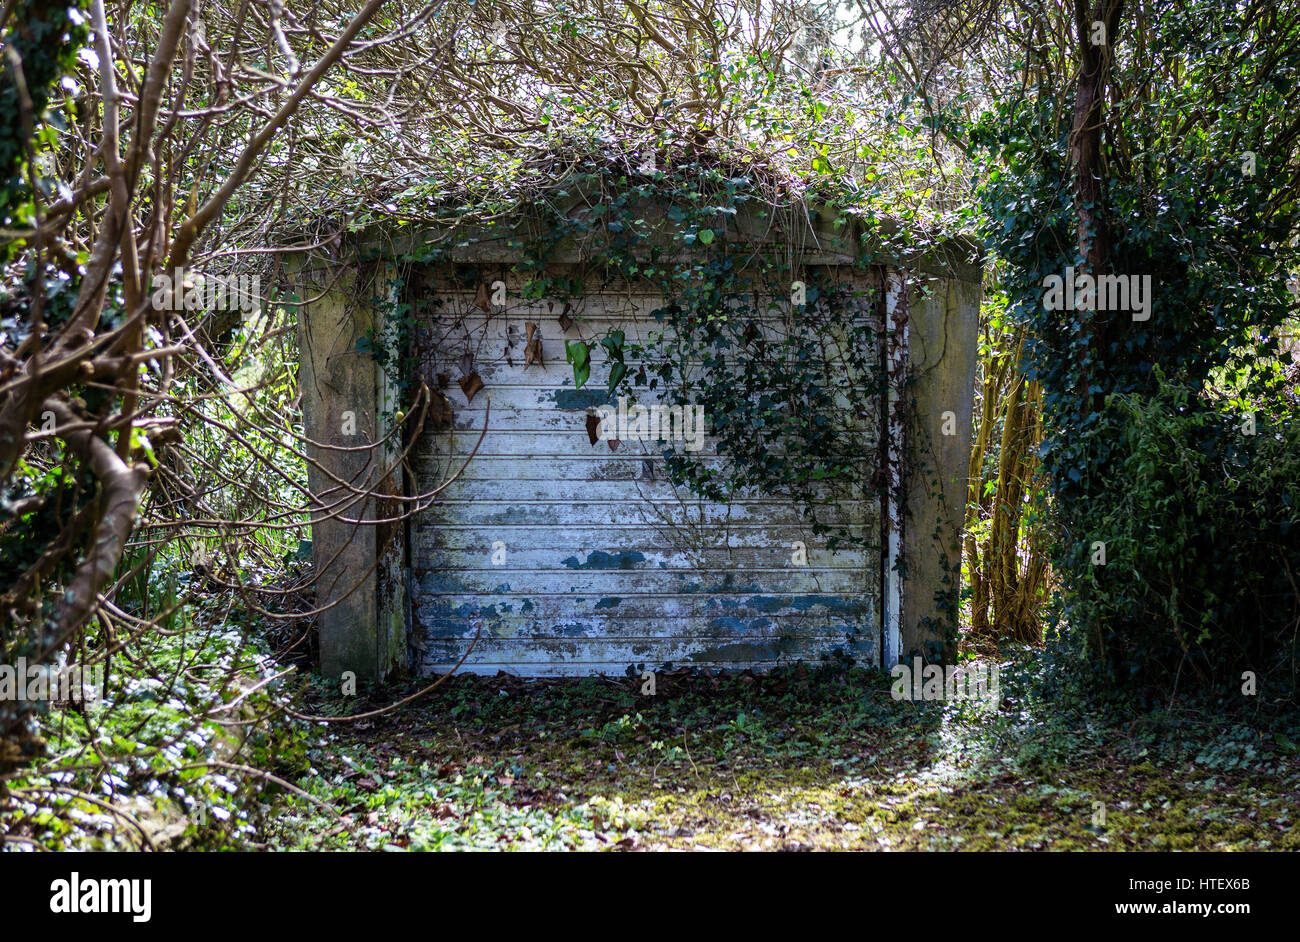 Forgotten Garage with trees, ivy, and undergrowth Stock Photo